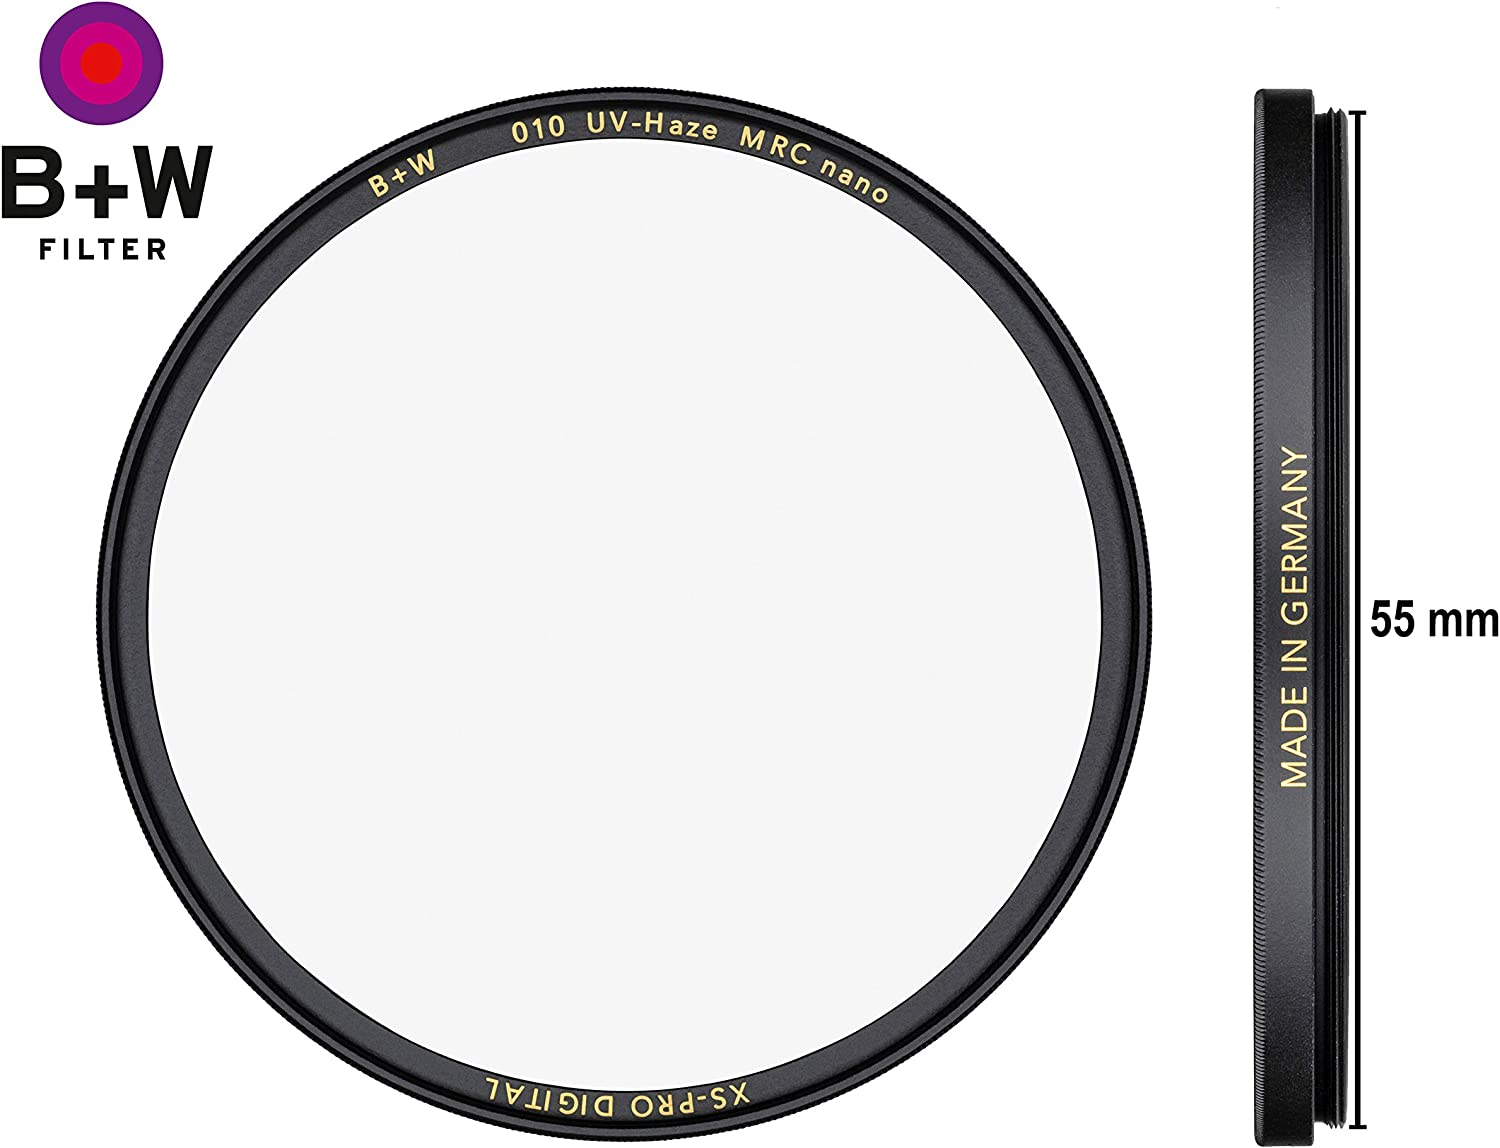 W 55mm UV Protection Filter Clear Protector Photography Filter MRC Nano Xtra Slim Mount 16 Layers Multi-Resistant and Nano Coating B XS-PRO for Camera Lens 55 mm 010